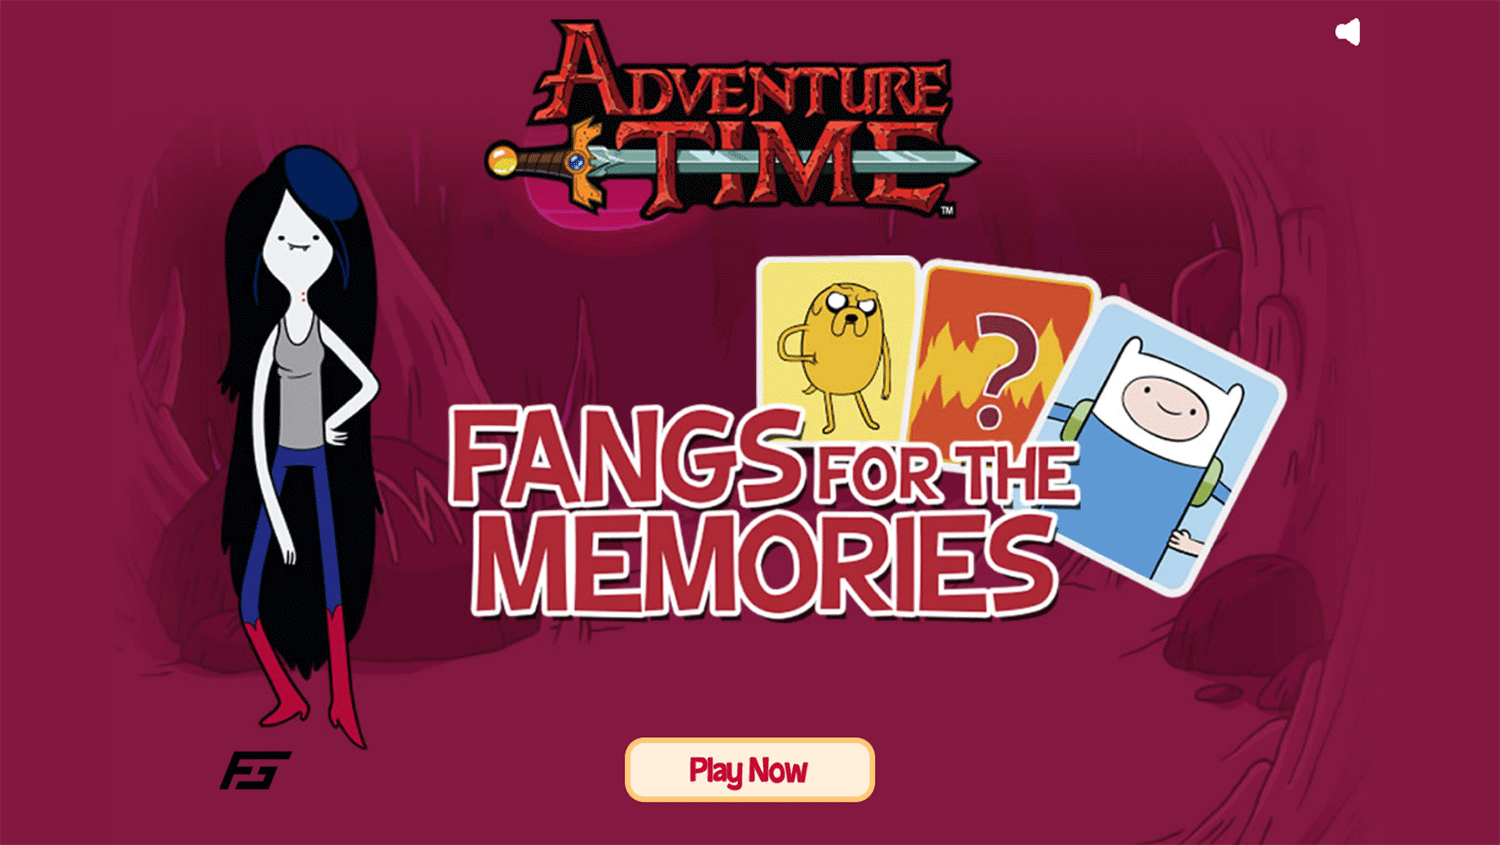 Adventure Time Fangs for the Memories Game Welcome Screen Screenshot.